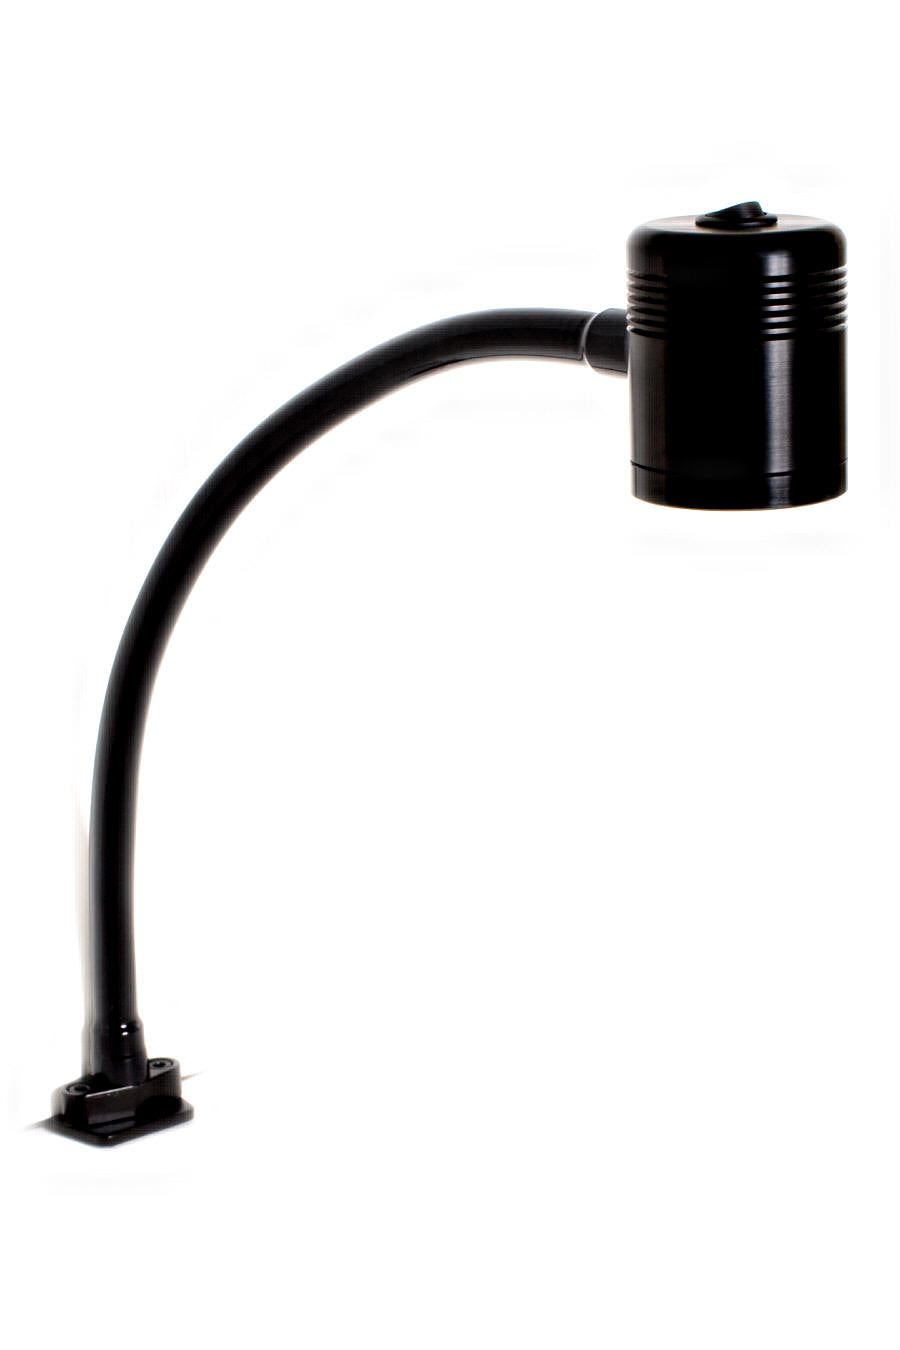 MR16 High Power LED Flexible Arm Task Light